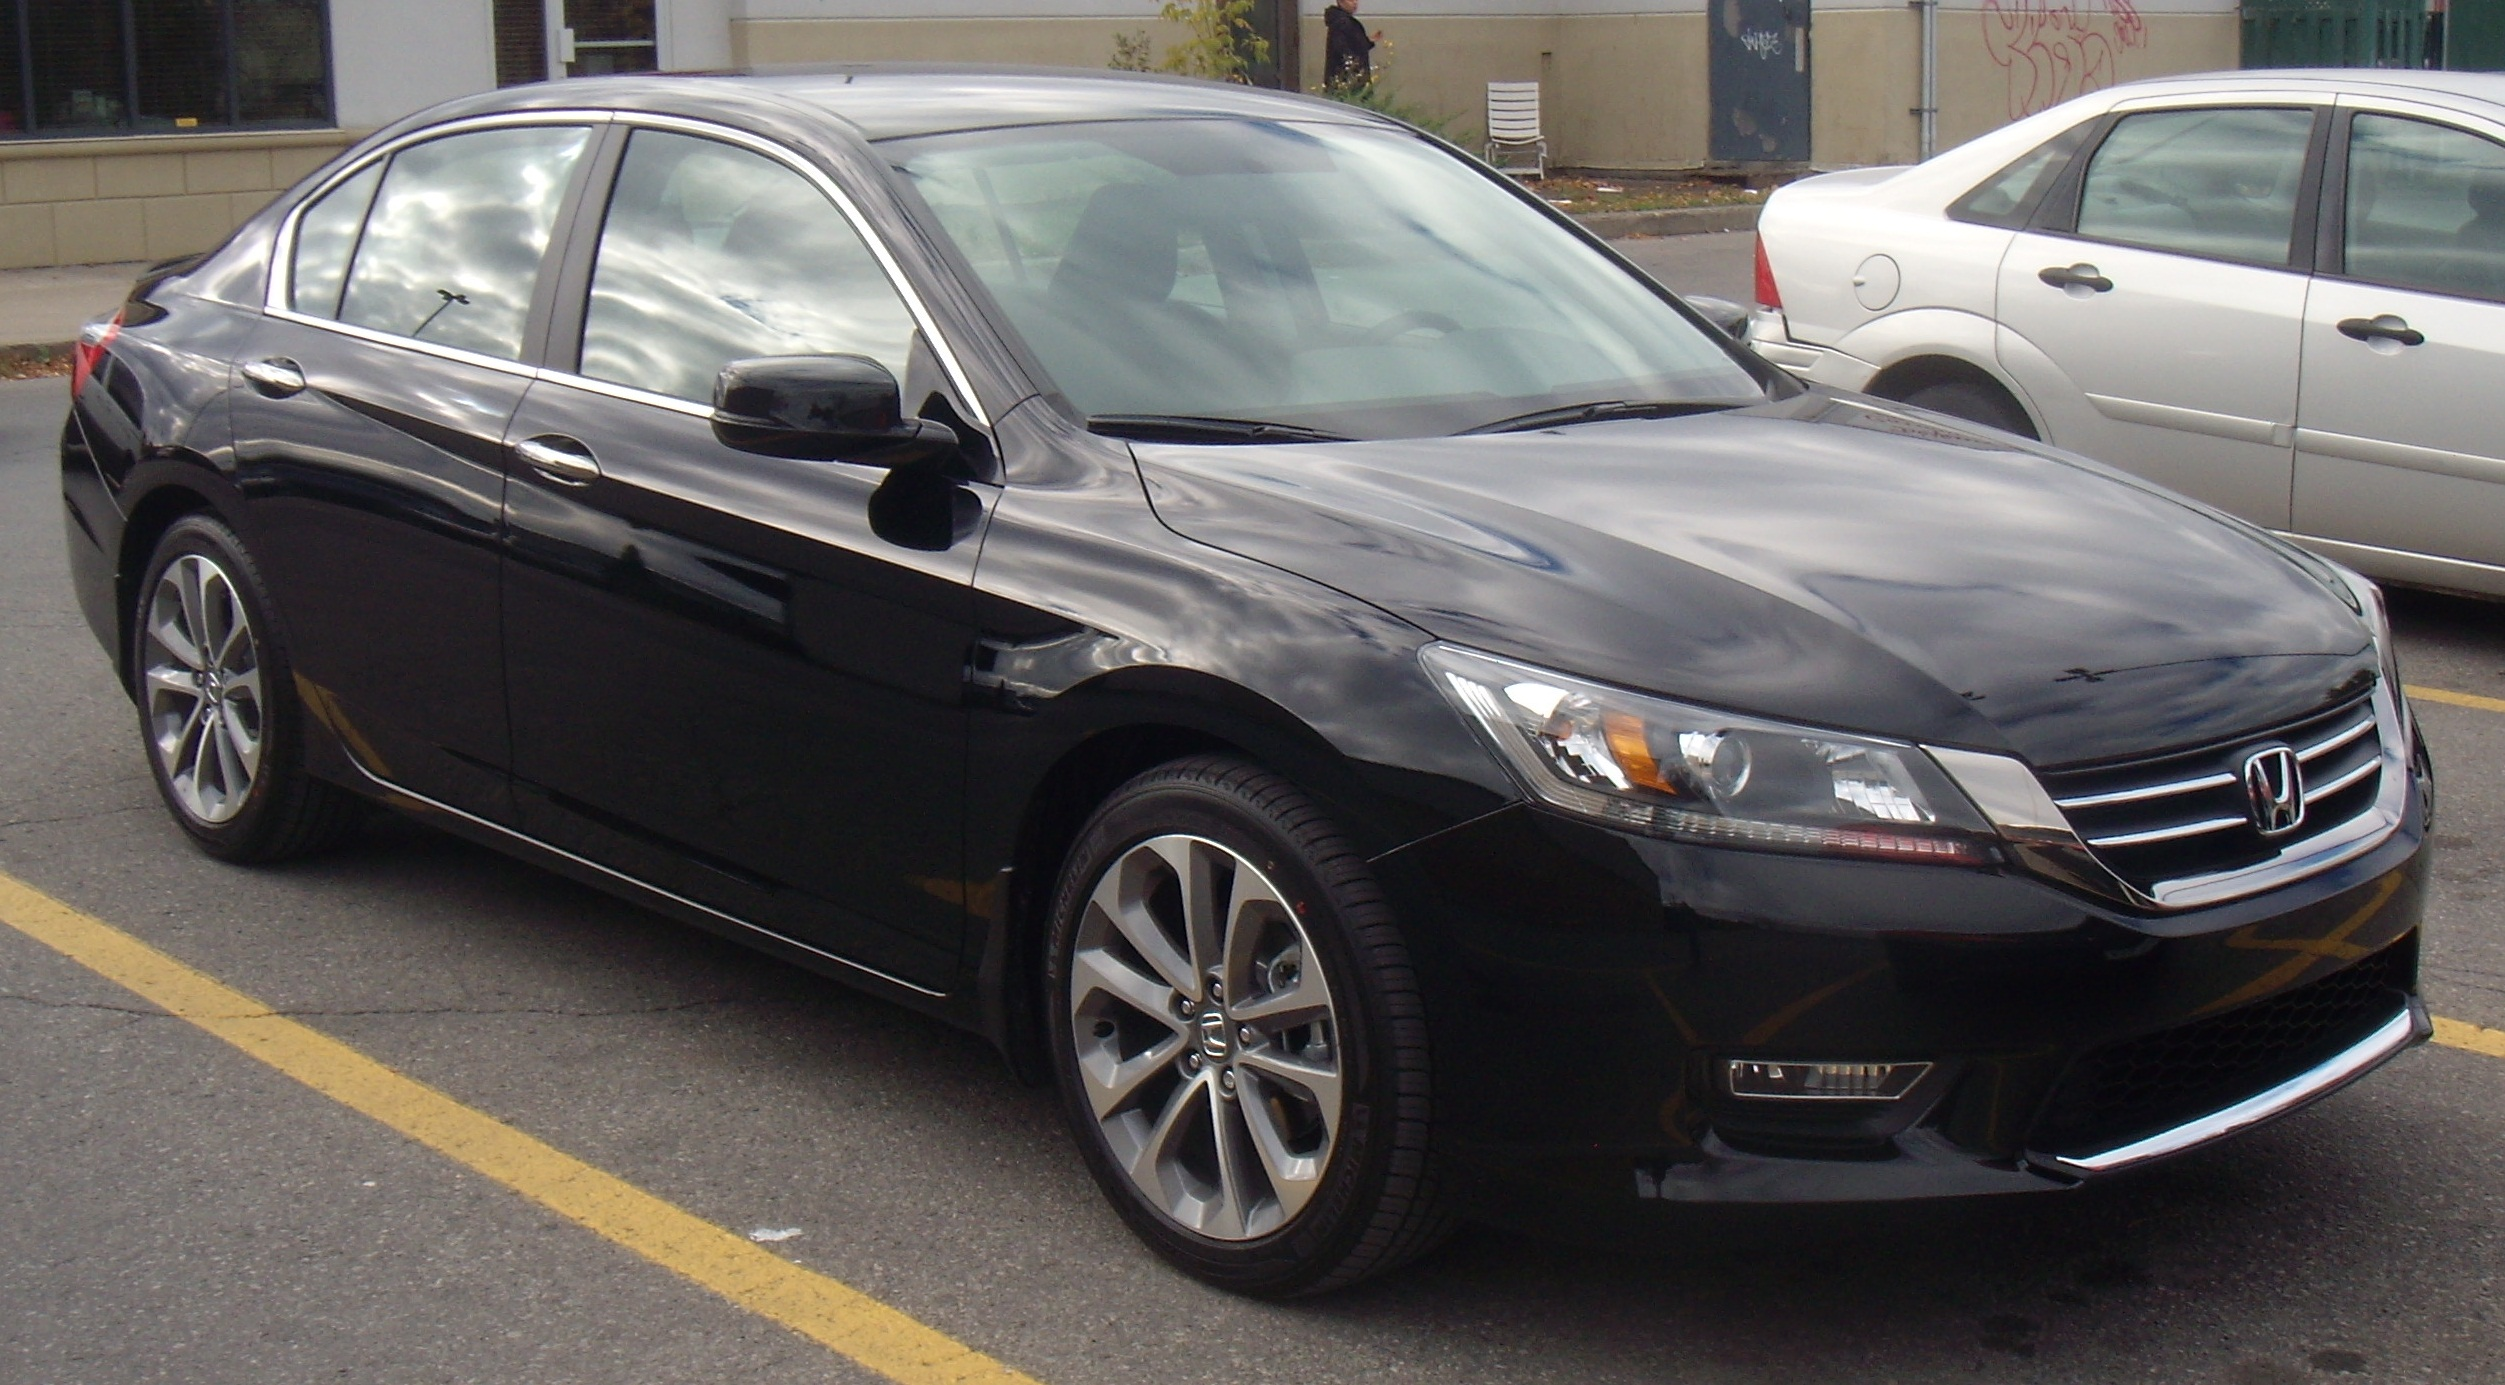 honda accord viii sedan 2014 images #3